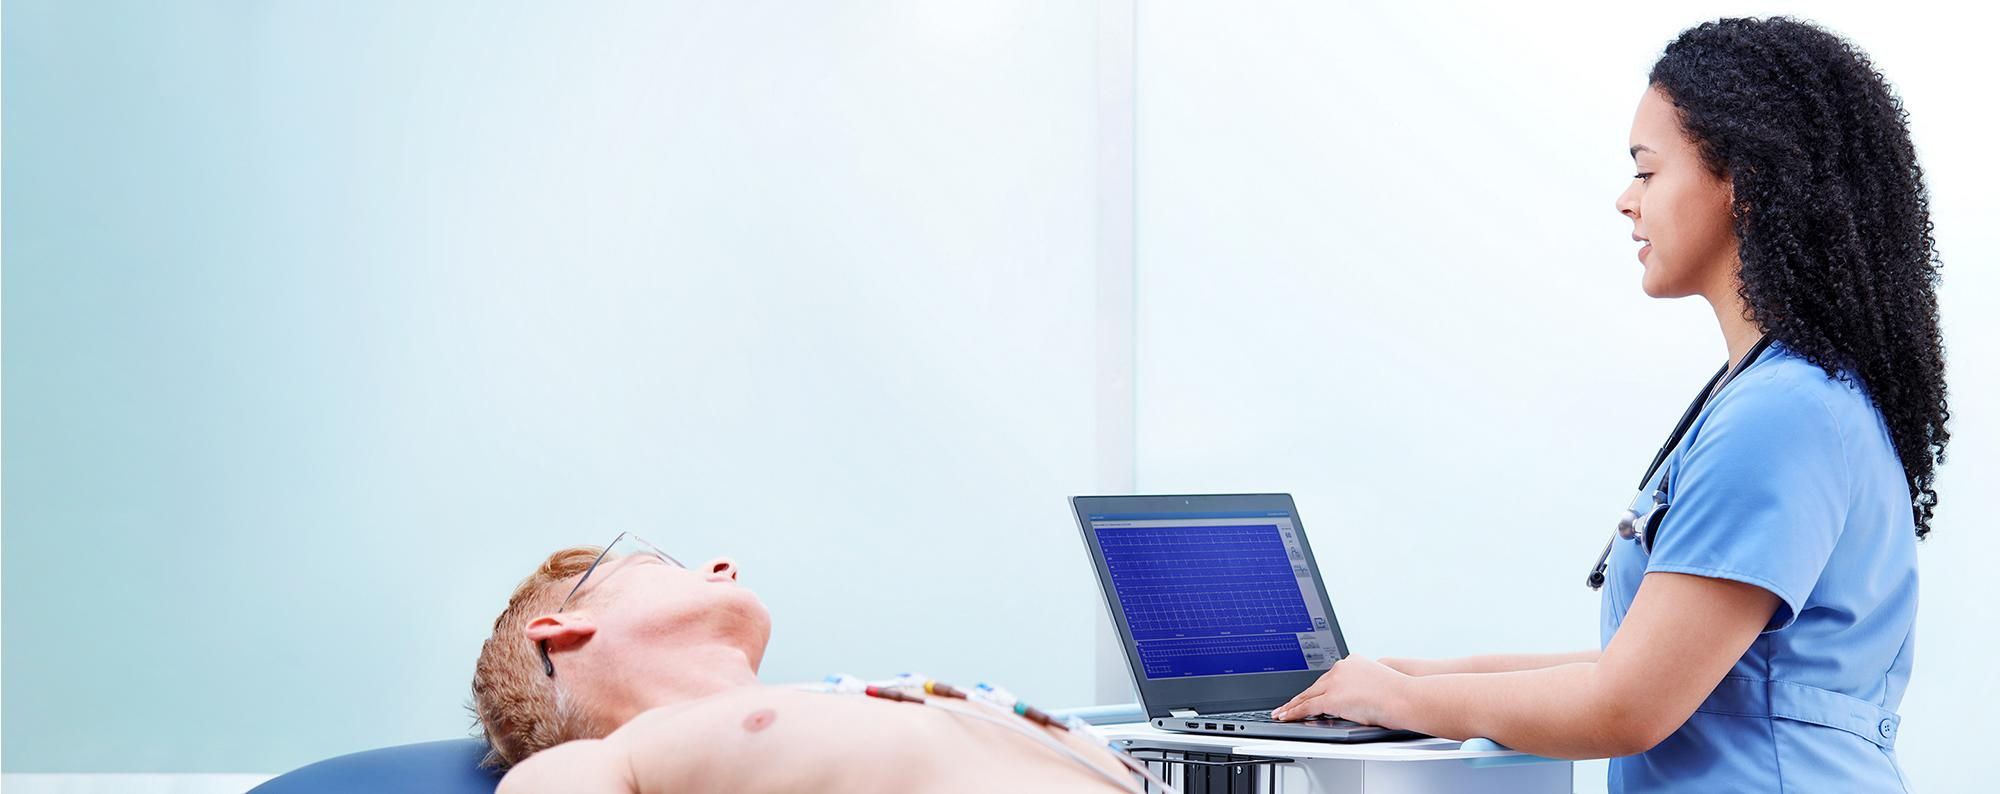 Patient connected to the Welch Allyn® Diagnostic Cardiology Suite™ ECG while a clinician looks at the results on a laptop.